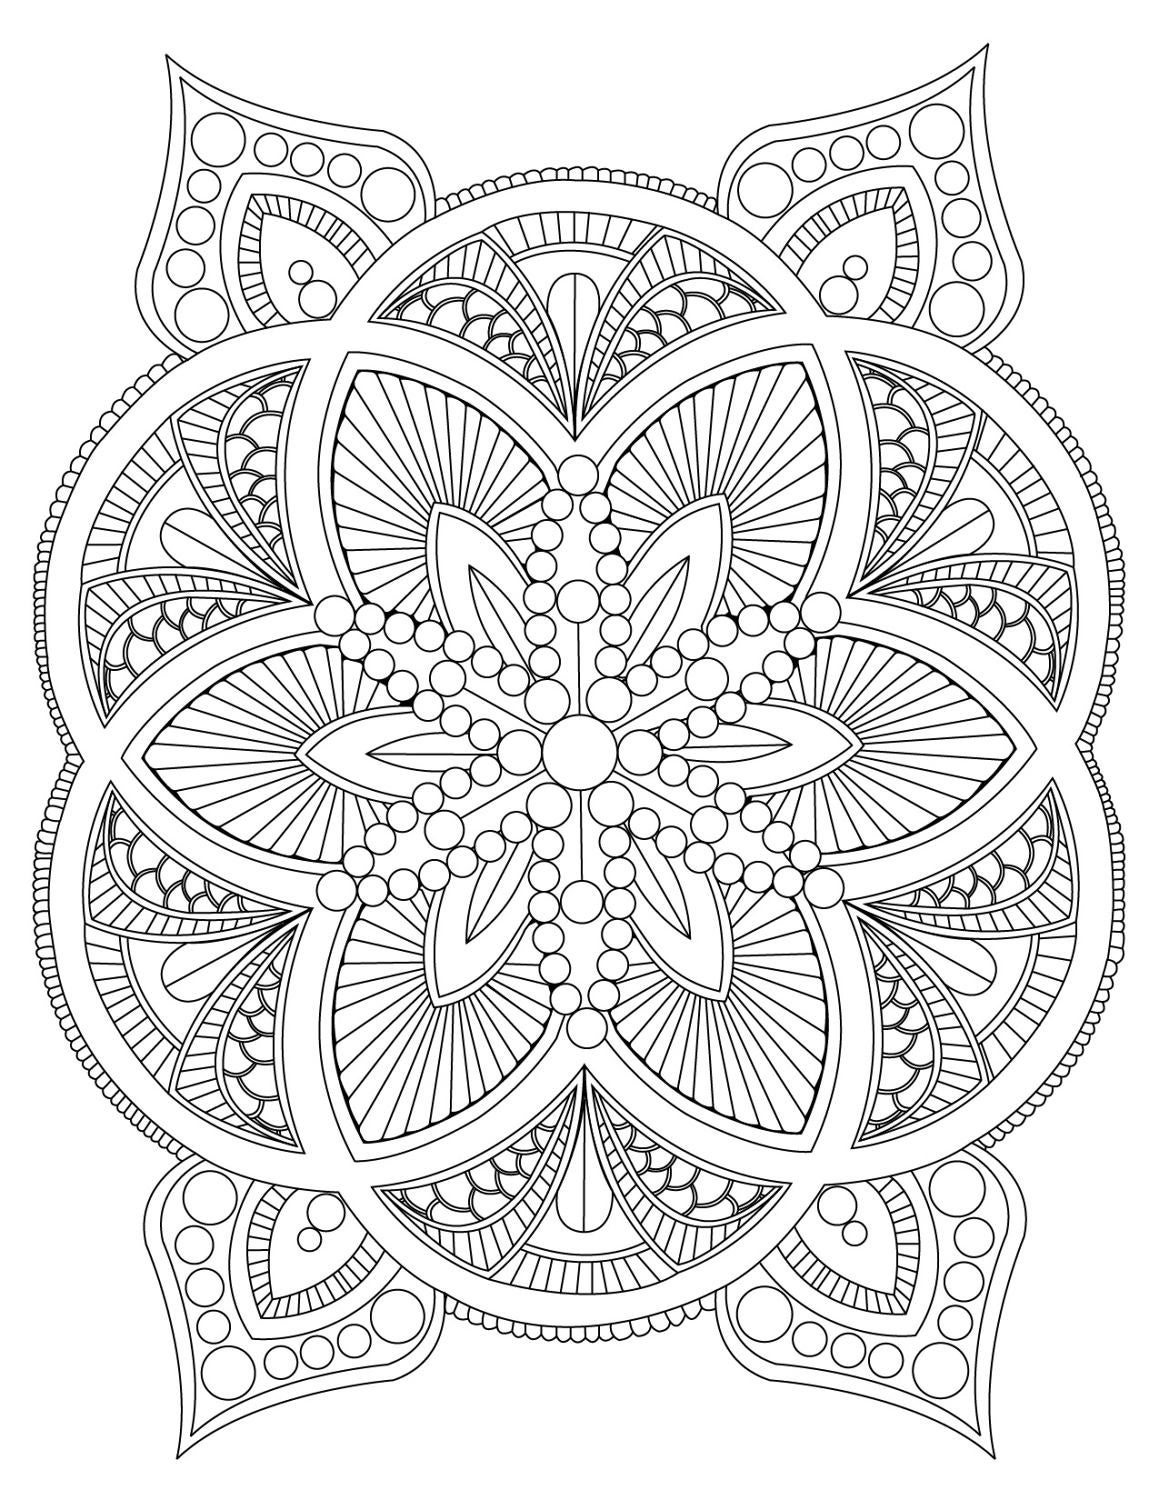 mandalas to color for adults free printable mandala coloring pages for adults best adults mandalas for to color